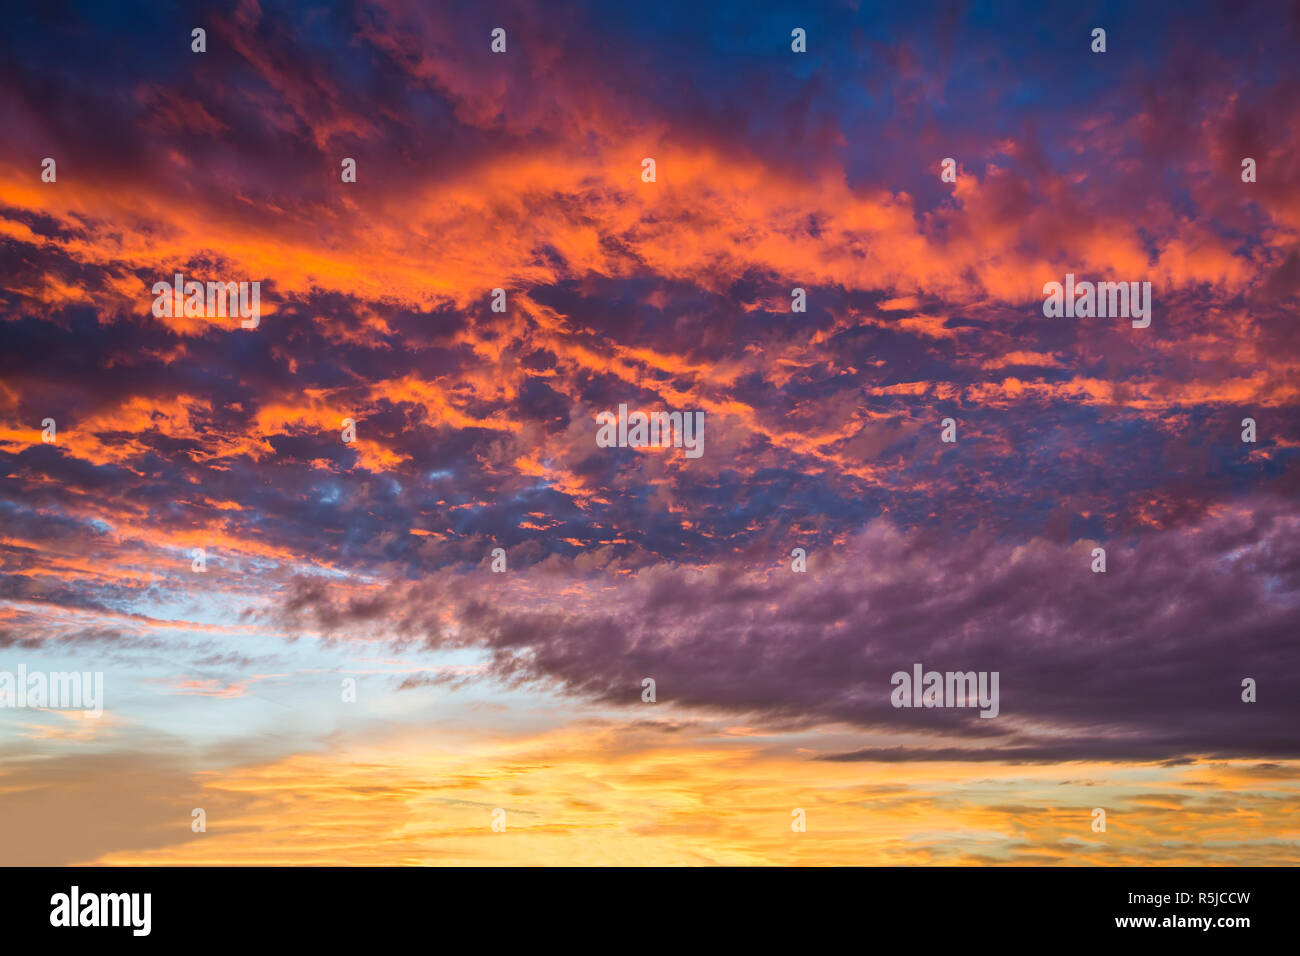 Sunrise paints a very dramatic and colorful morning sky. Stock Photo